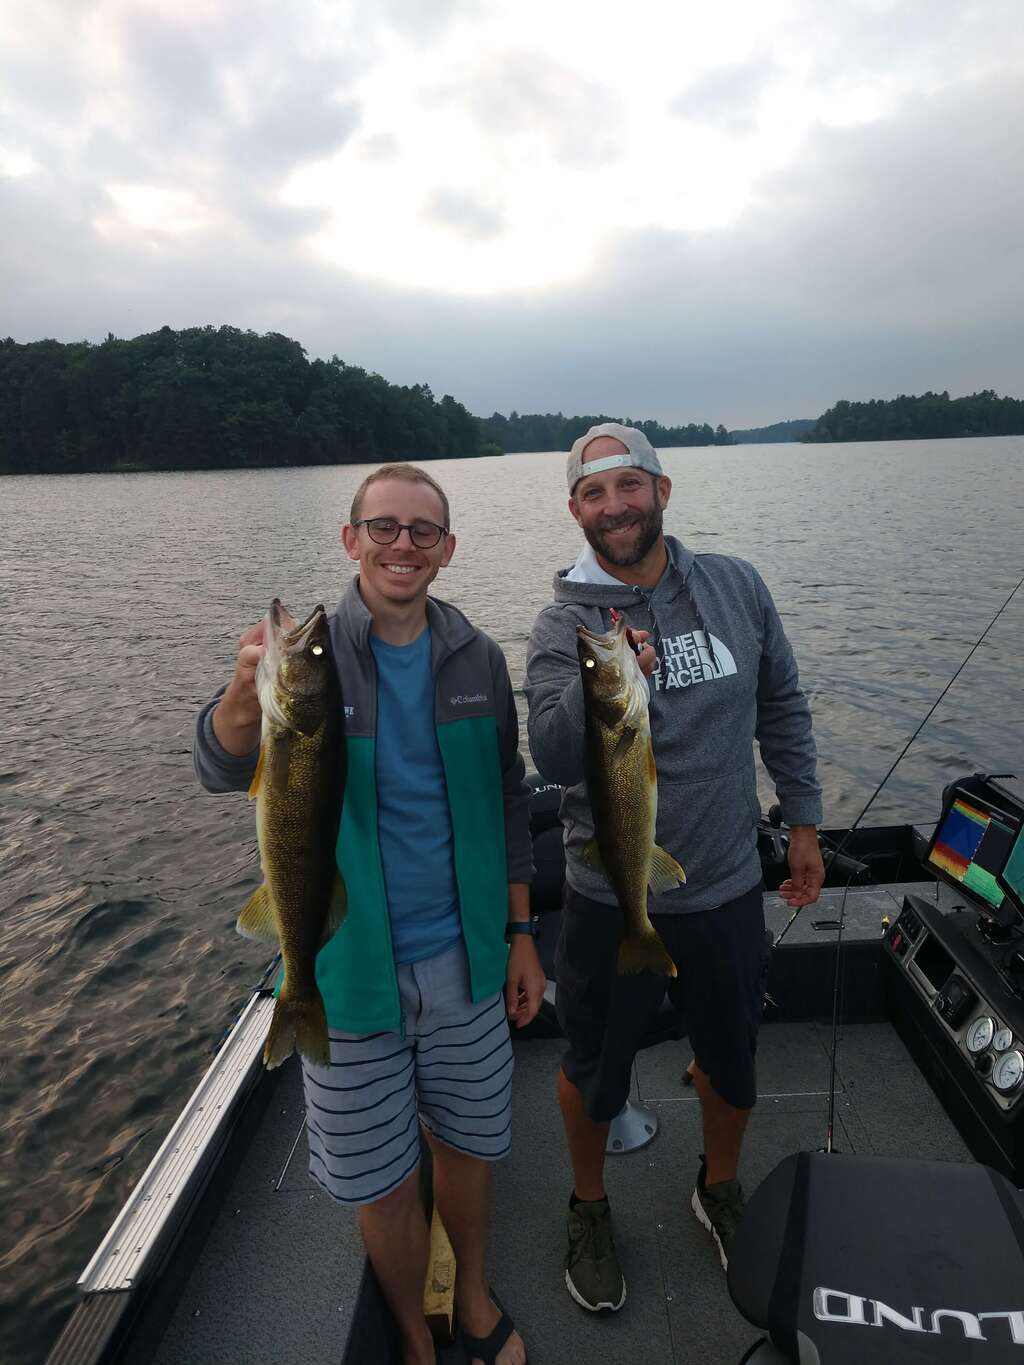 Had a great evening on Lake Tomahawk.